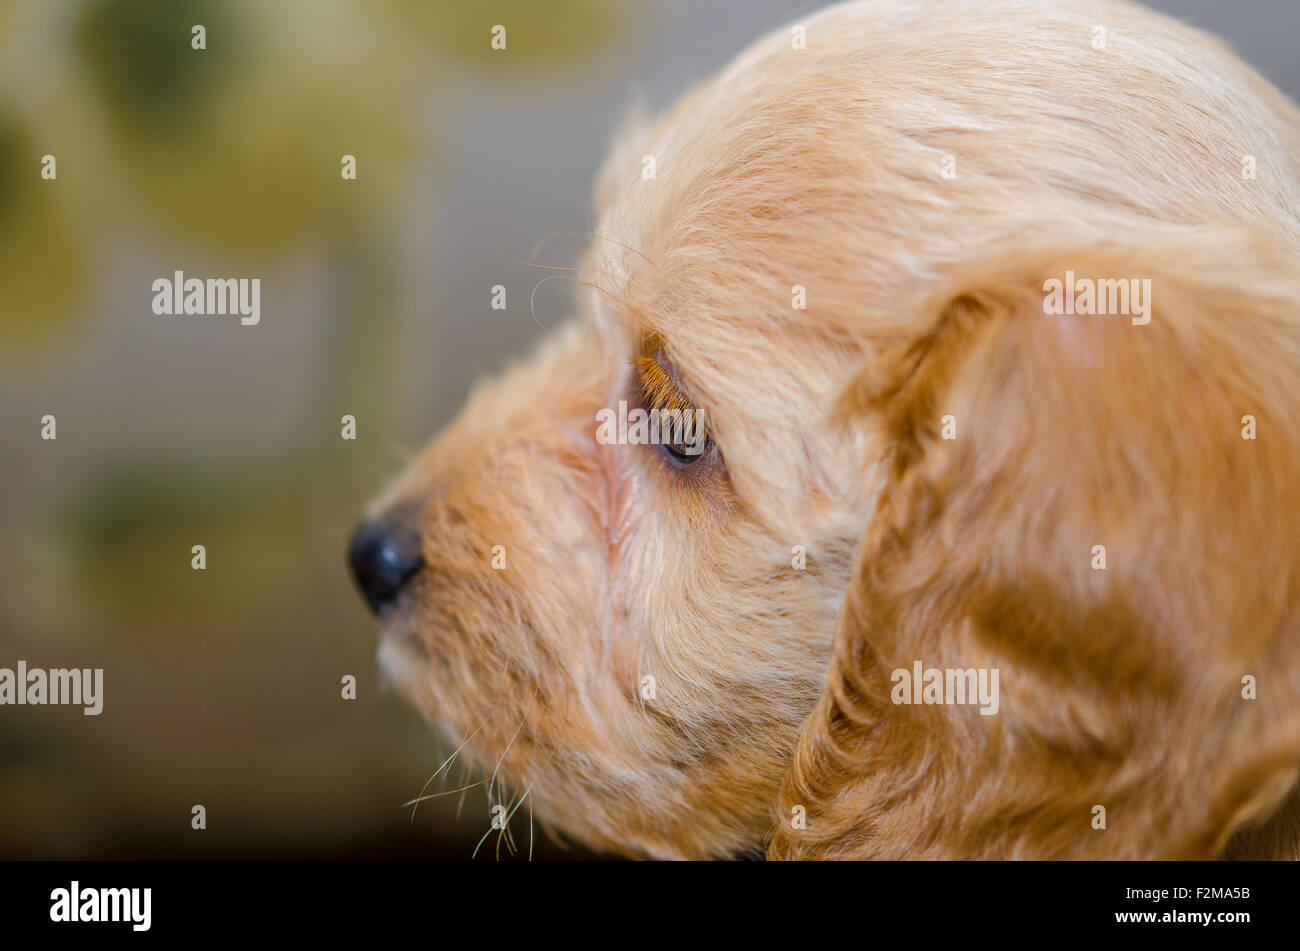 Cockerpoo puppy close-up of head, 8 weeks old - Stock Image